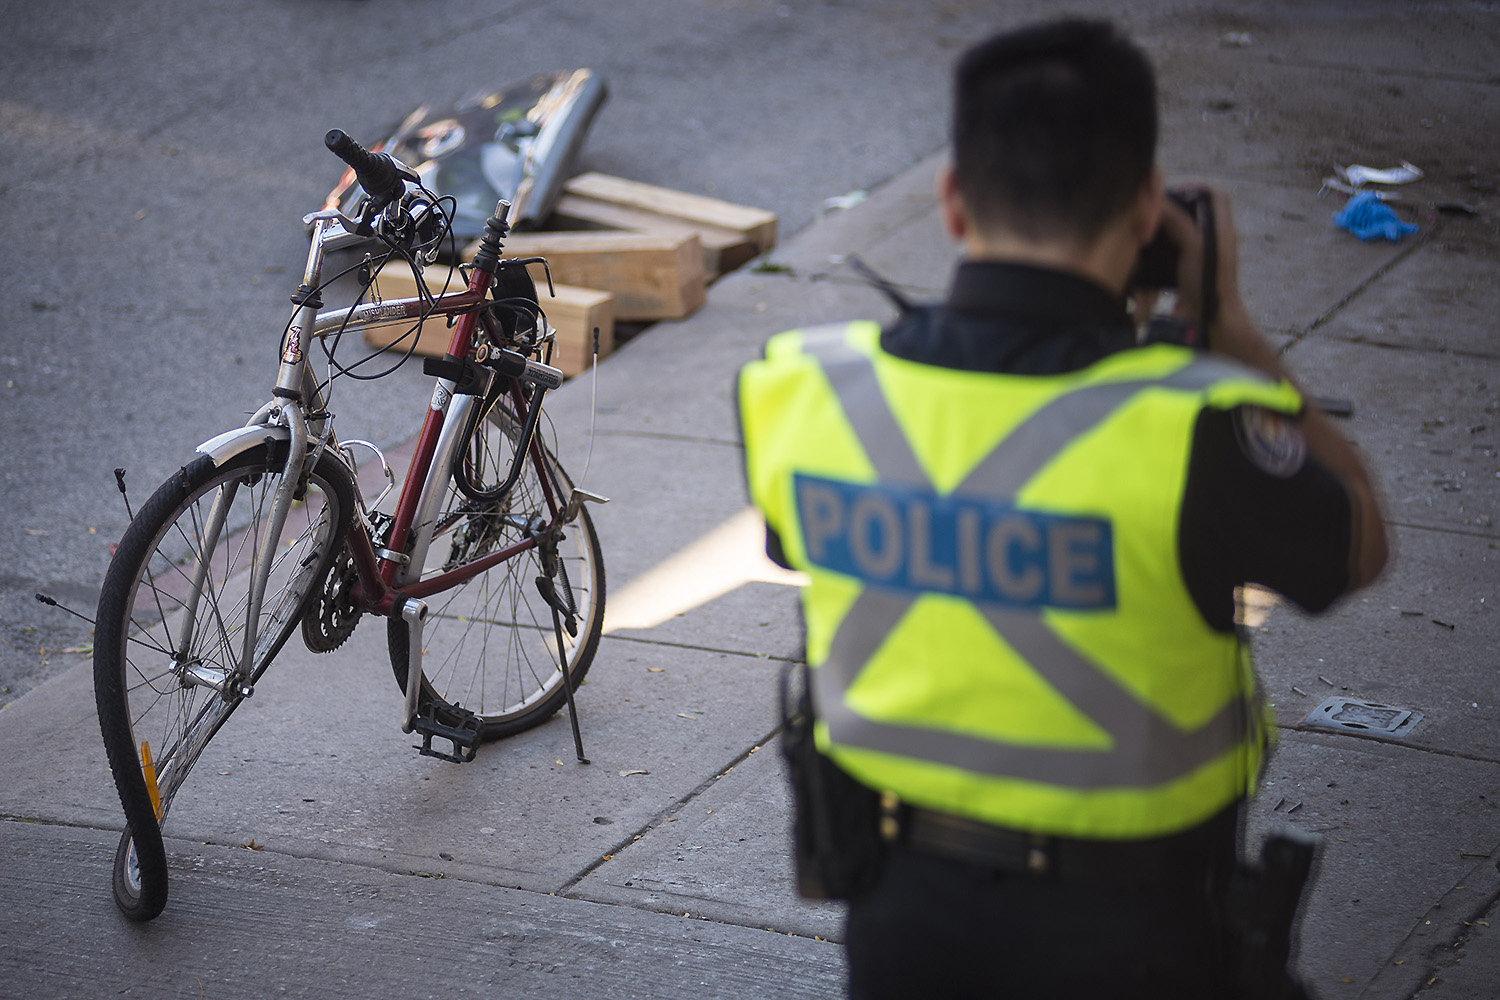 A police officer photographs the destroyed bike of David Delos Santos, 39, who died after he was struck by a vehicle that had crashed into a streetcar at King and Cowan Ave., Wednesday, October 18, 2017.